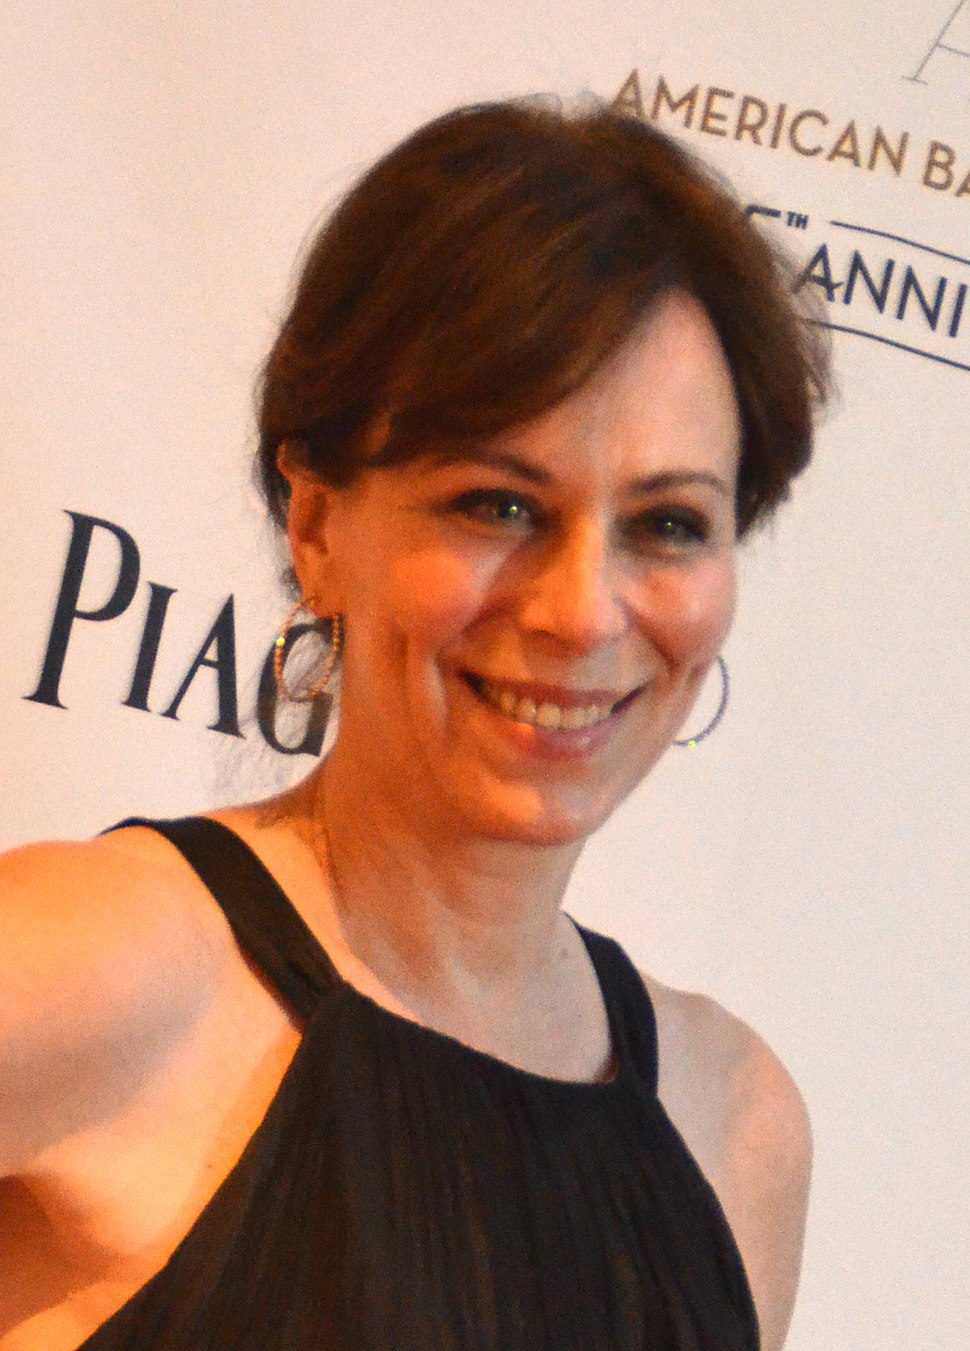 Jane Kaczmarek September 2014 (cropped)